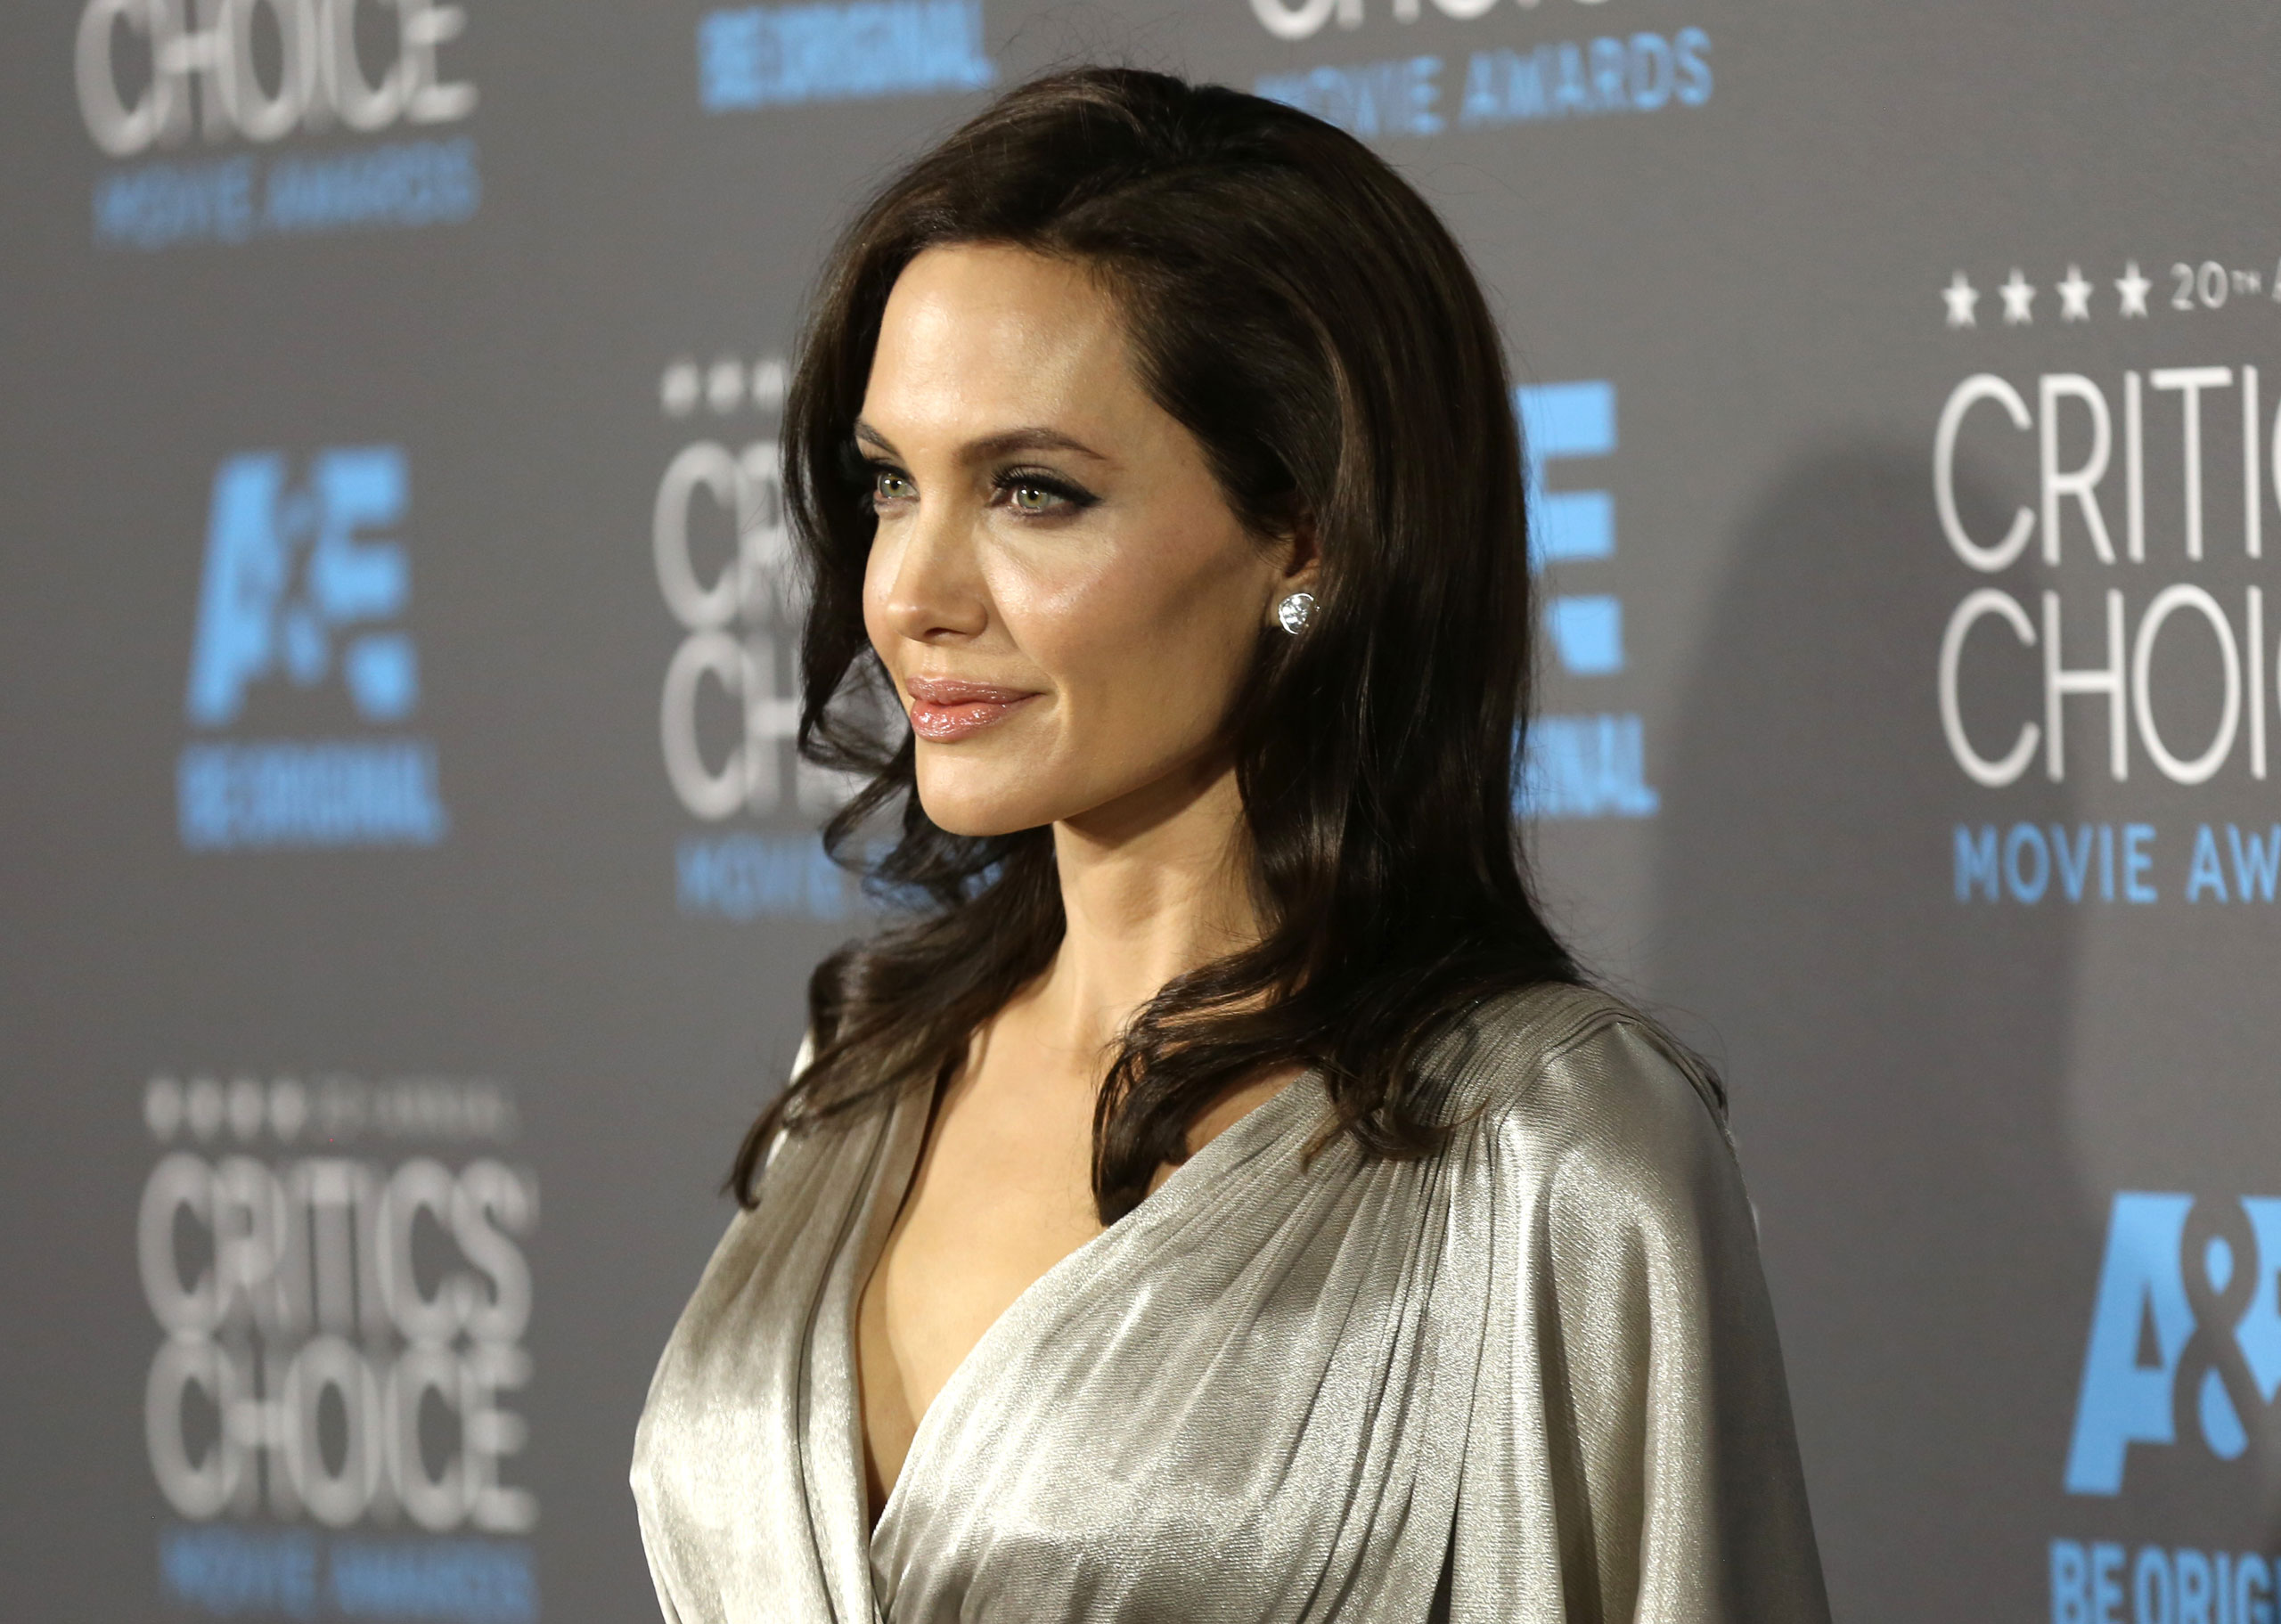 Angelina Jolie arrives at the 20th annual Critics' Choice Movie Awards at the Hollywood Palladium on  Jan. 15, 2015 in Los Angeles.